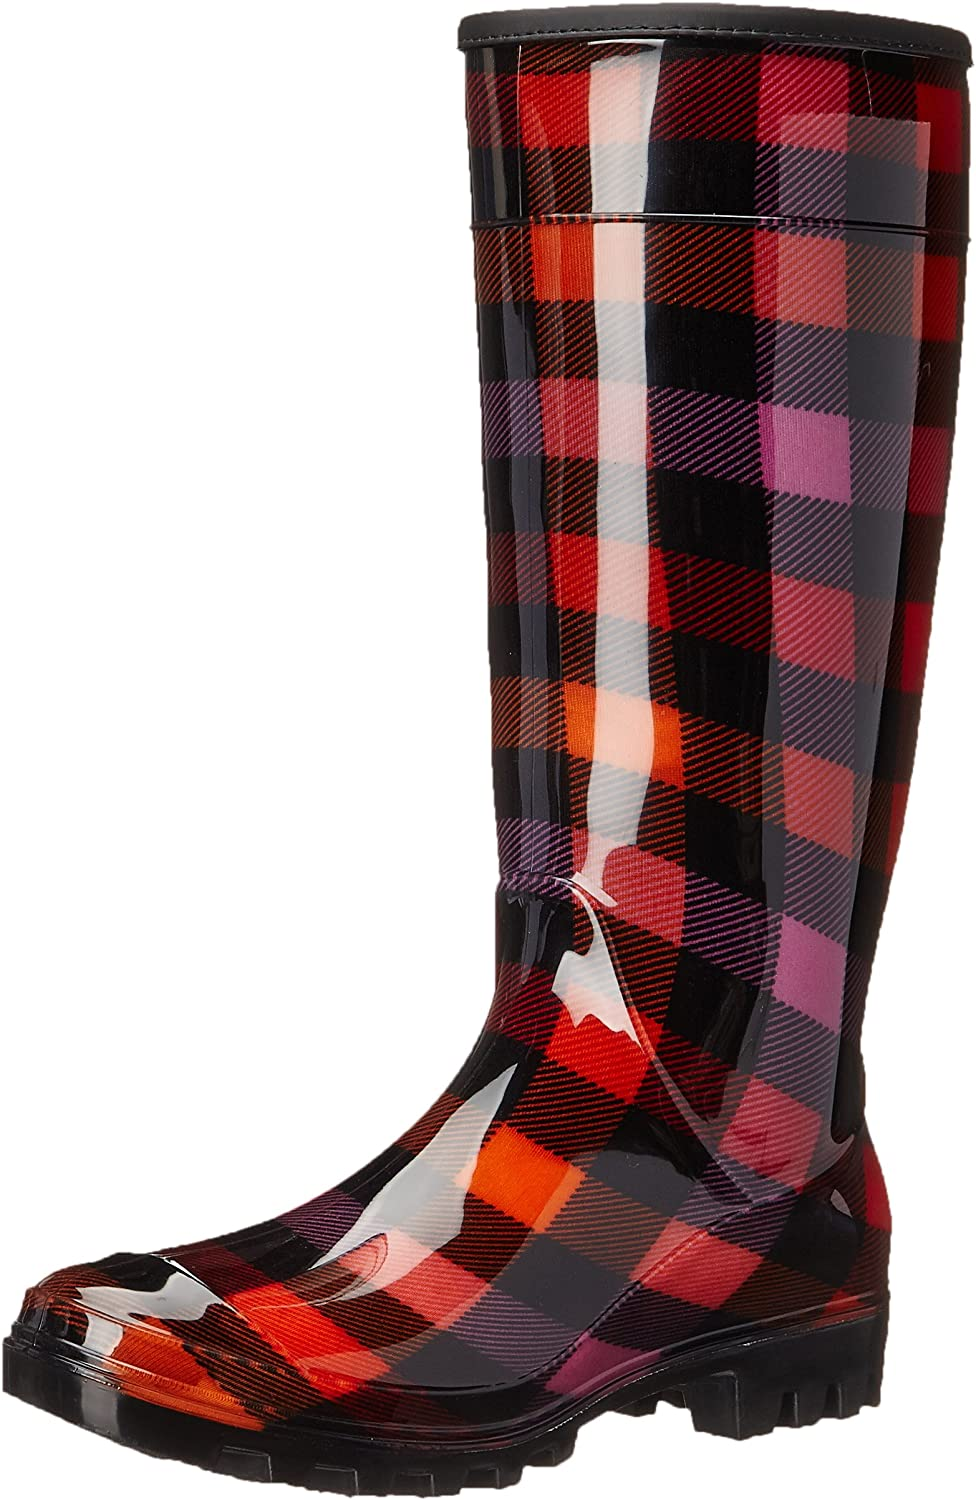 Dirty Laundry by Chinese Laundry Women's Ring Leader Rain Boot